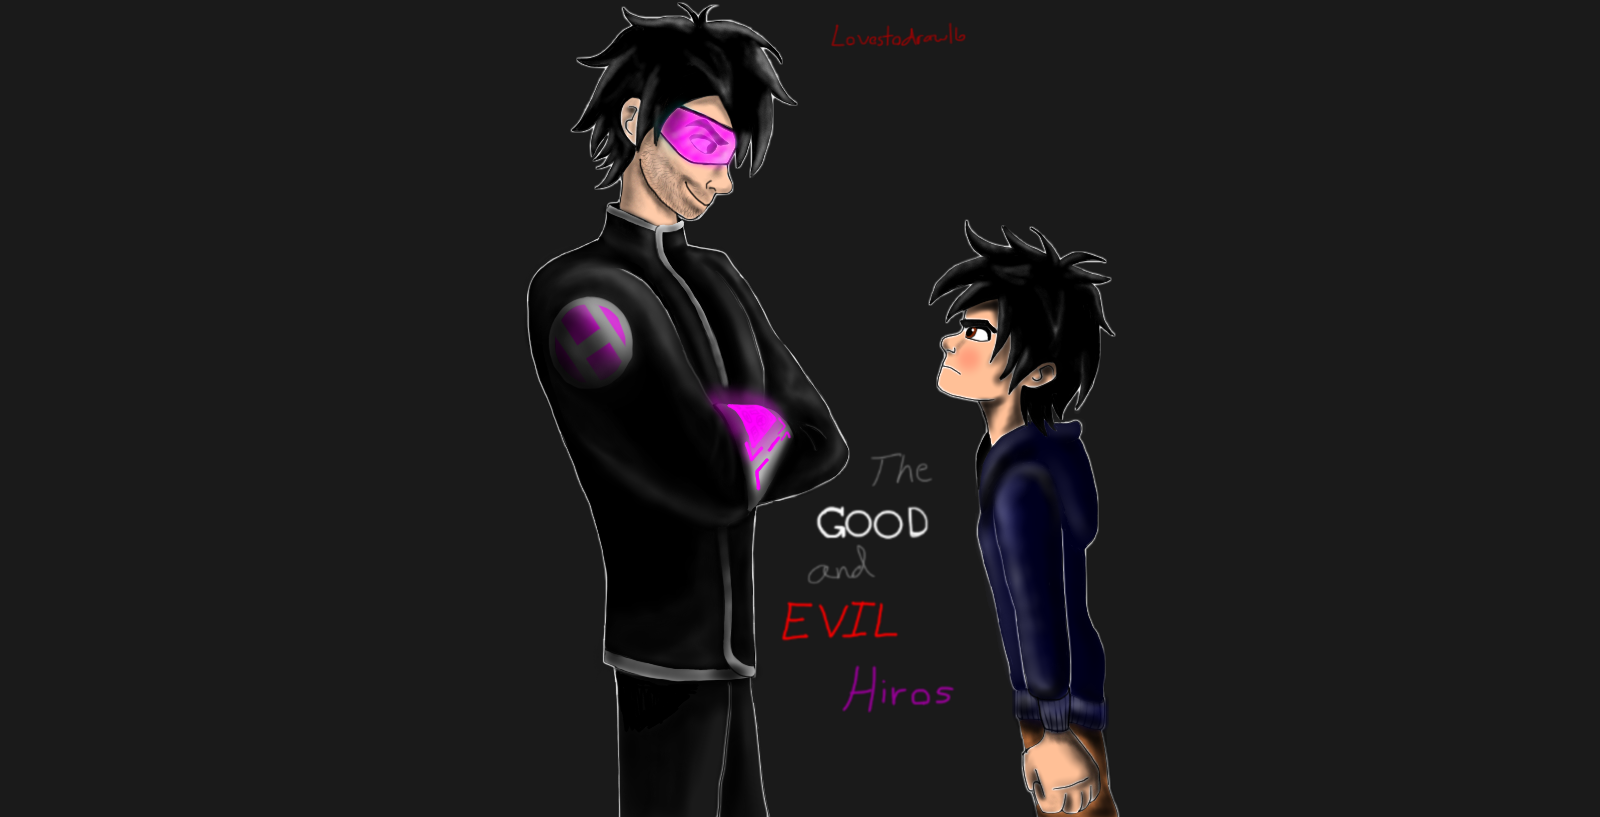 The Good and Evil Hiros :fanfiction story cover by ...